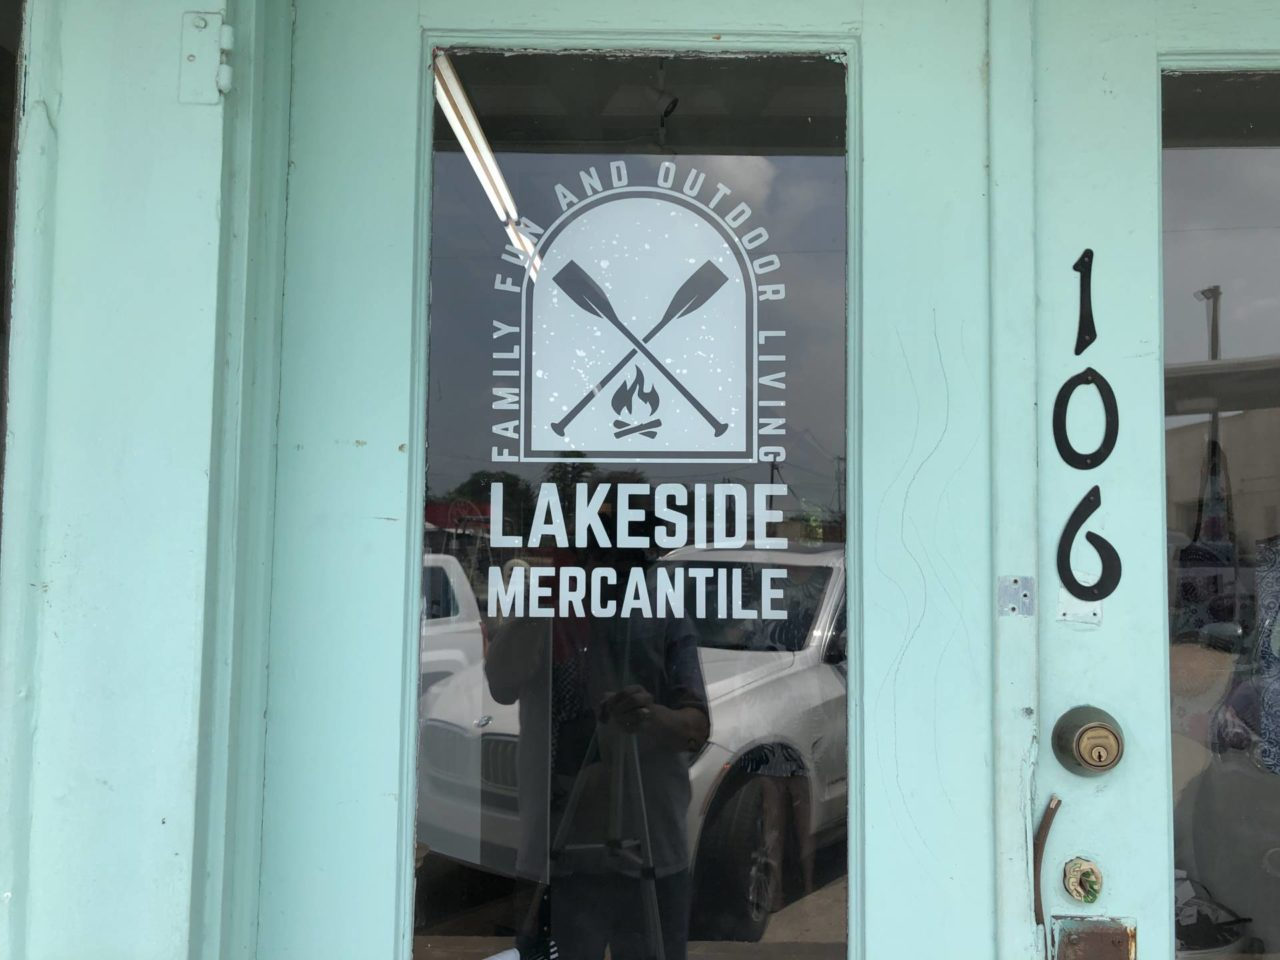 Lakeside Mercantile